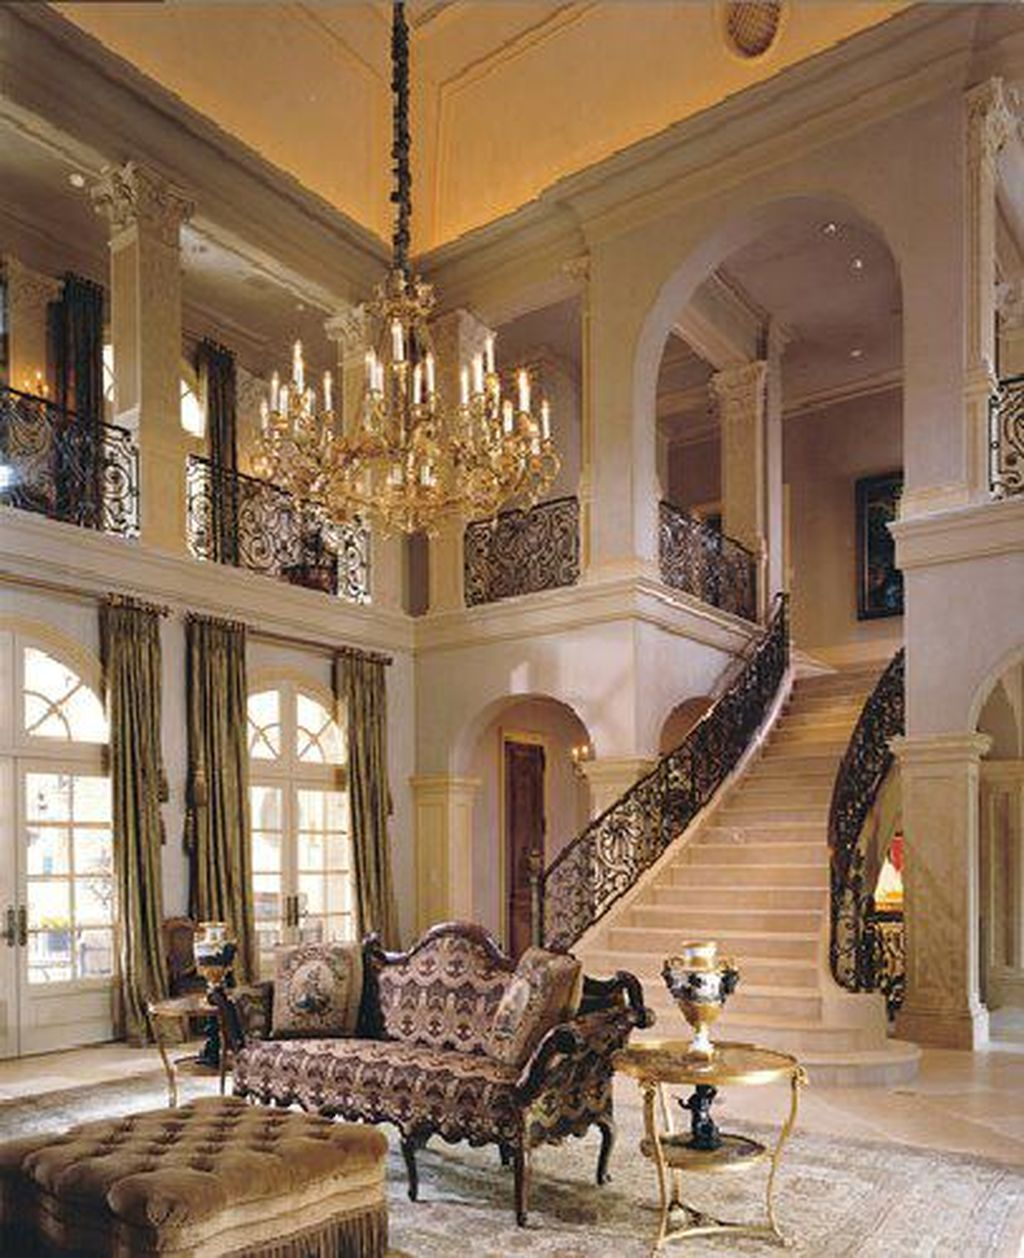 Decorating A Staircase Ideas Inspiration: 35 Grand Staircase Inspiration